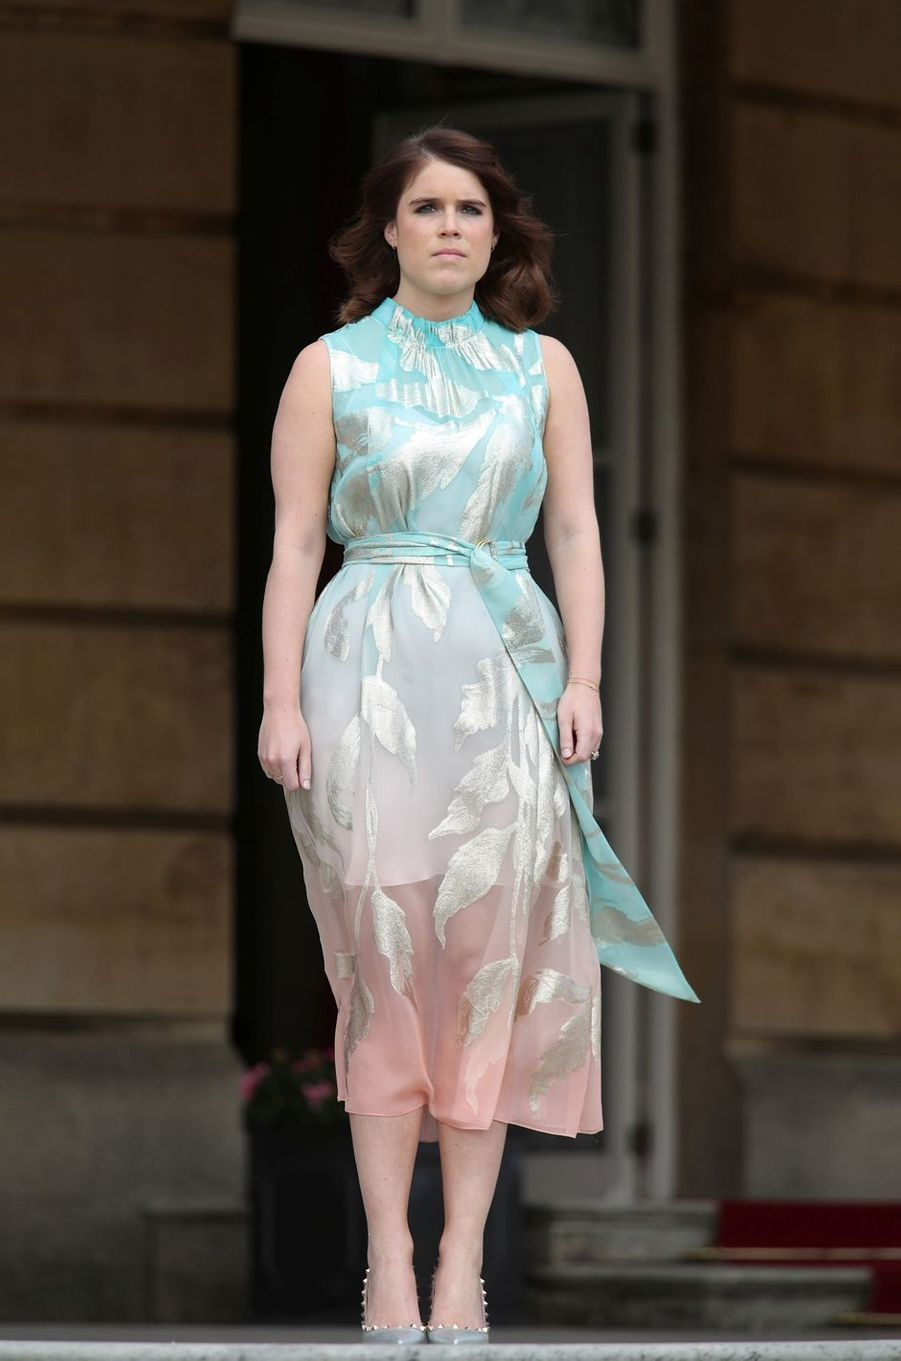 La princesse Eugenie d'York à Buckingham Palace à Londres, le 22 mai 2019